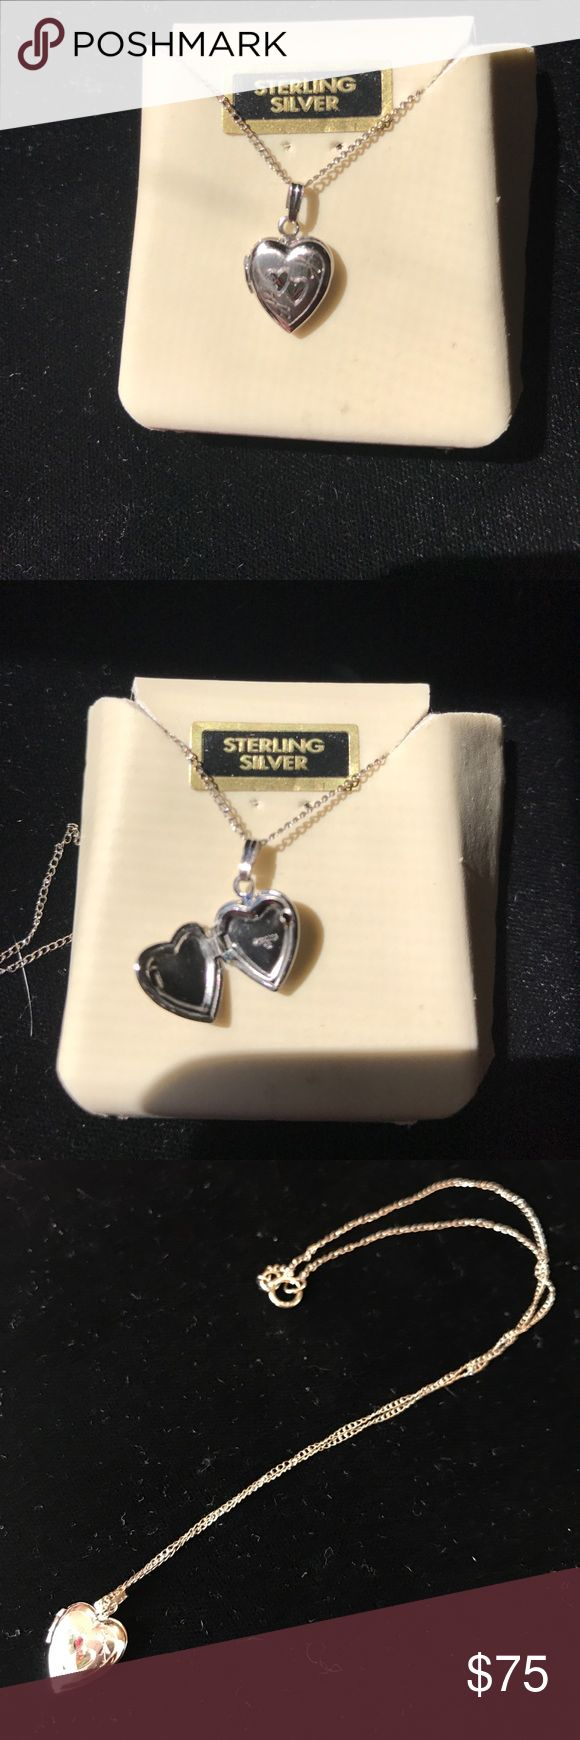 Little Girl's Sterling Silver Locket Necklace NEW! The beauty is in the detail. Heart shaped locket with engraved hearts. Very fine chain. Real Sterling silver. No trades or lowball offers please. Tru Kay Jewelry Necklaces